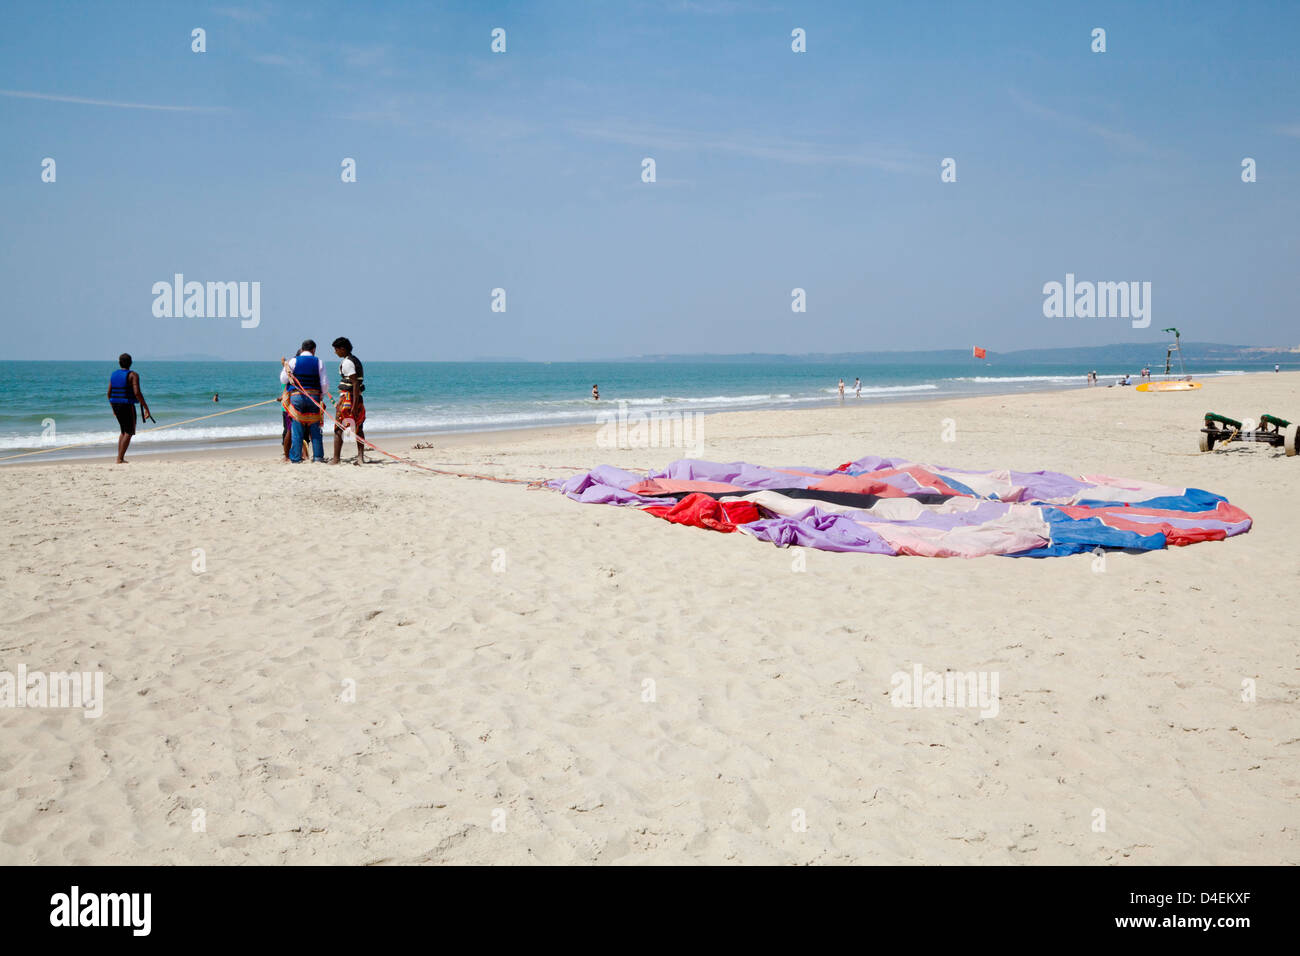 Concept, getting ready for paragliding over the sandy shoreline on beach parachute laid flat on ground Stock Photo